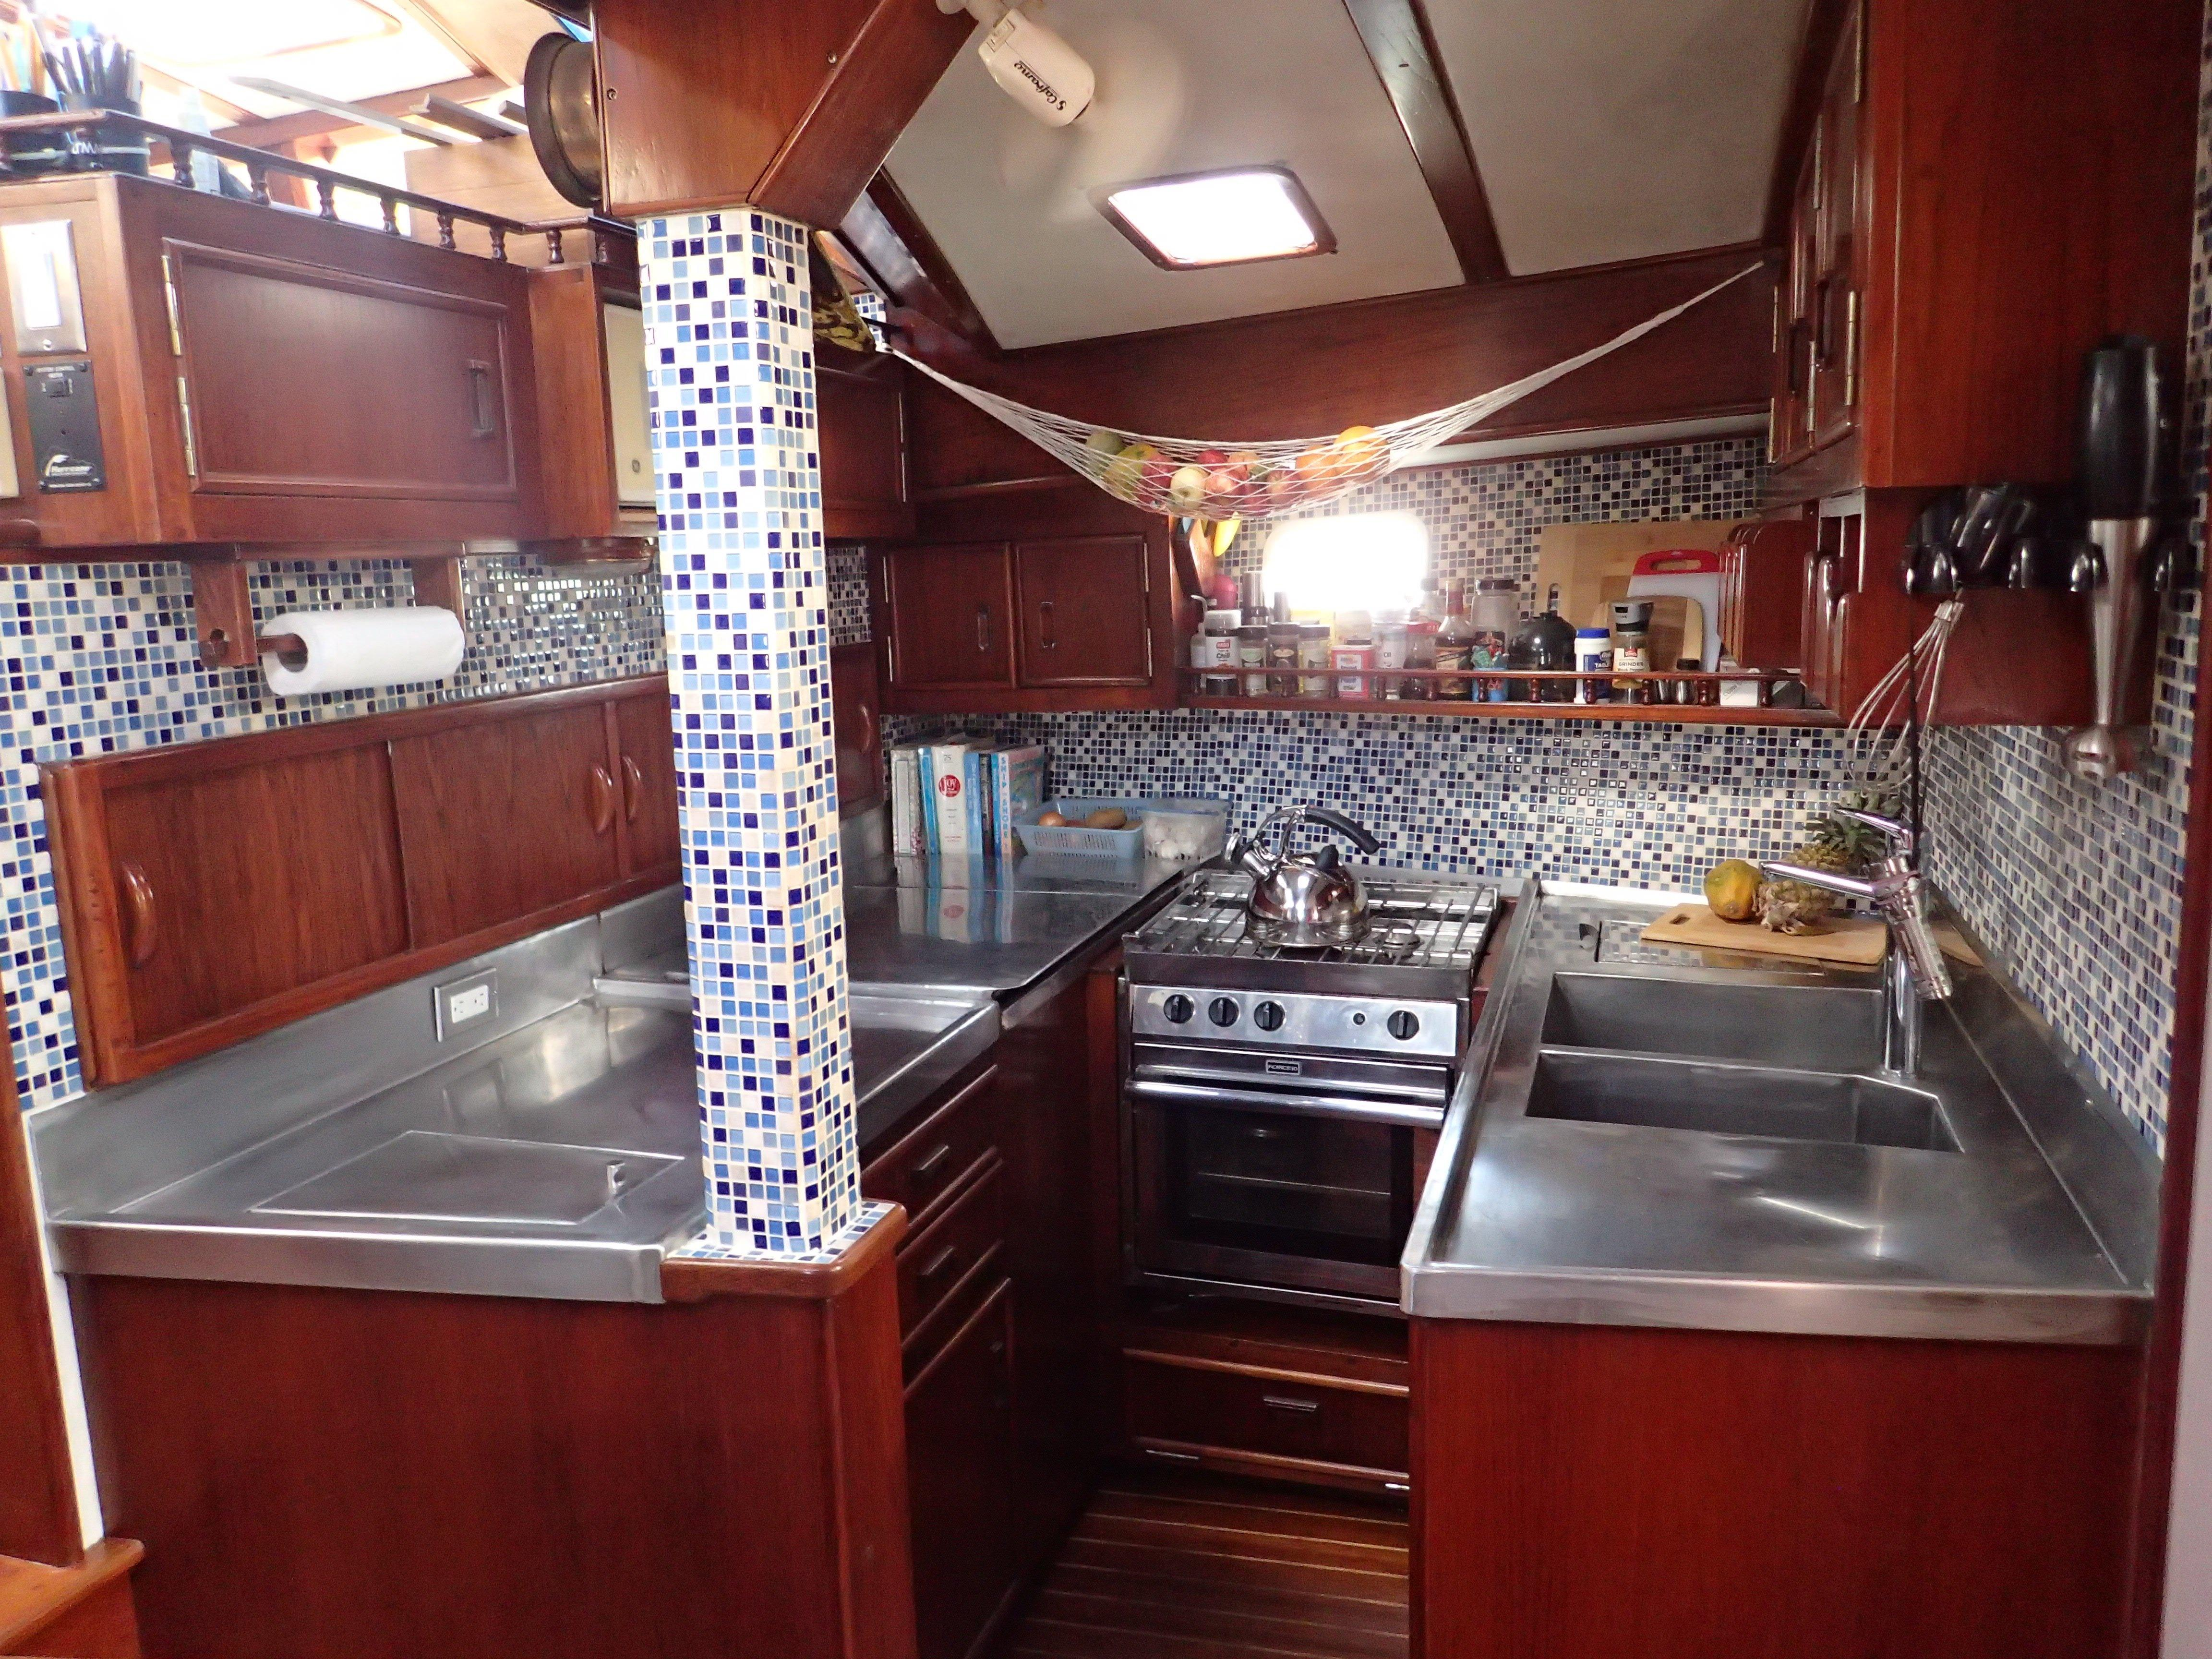 Stainless Steel Double Sinks And Italian Tile For Full Galley Refit In 2015